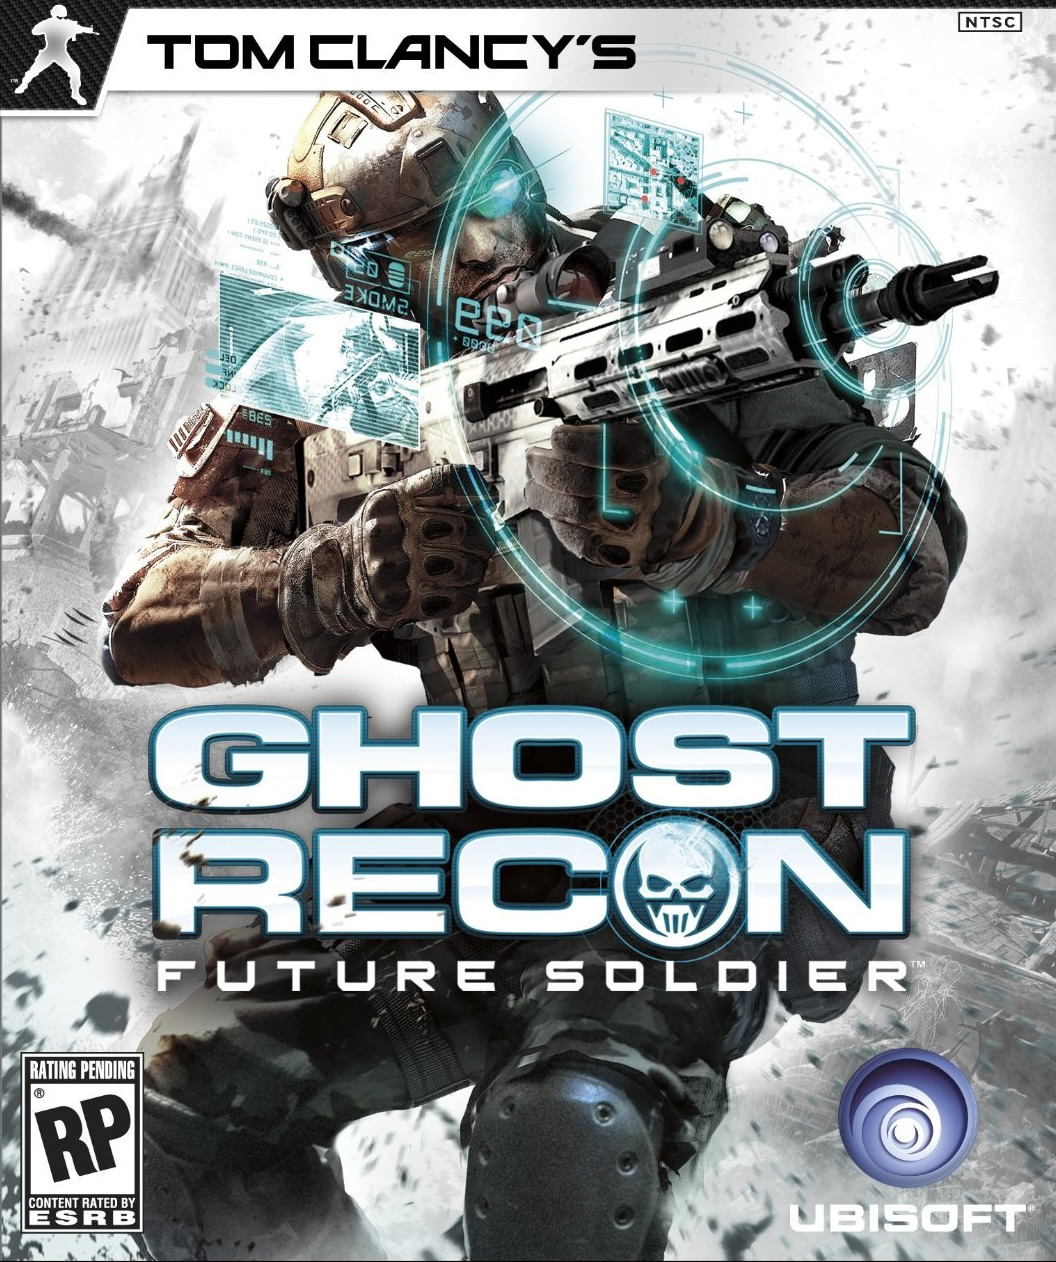 http://download.gamezone.com/uploads/image/data/875289/ghostreconfuturesoldier.jpg